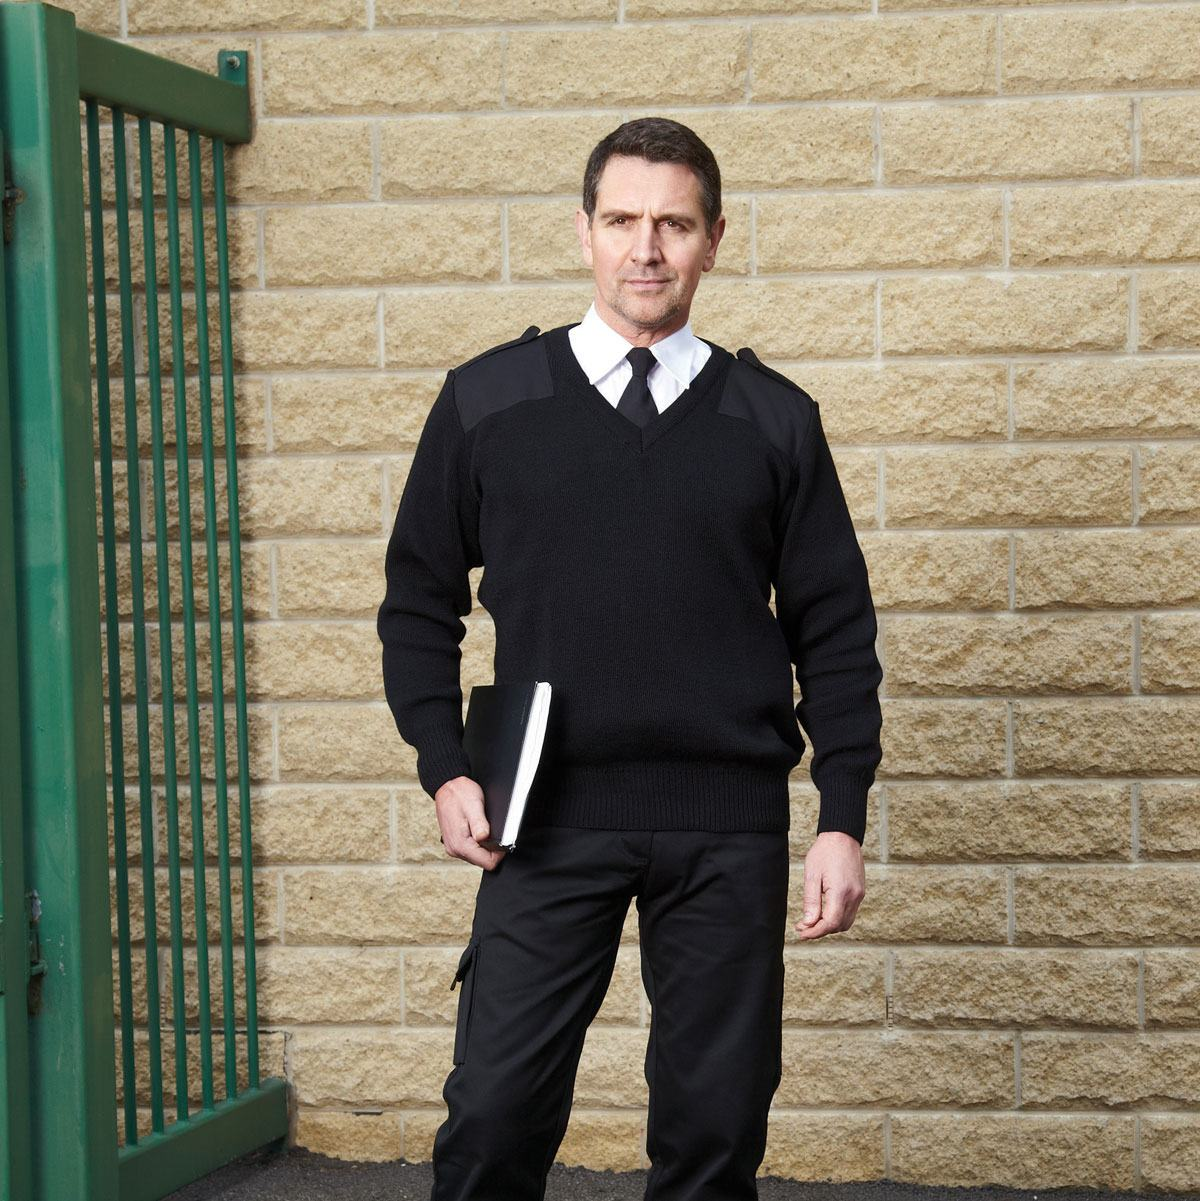 Learn How to Choose a Security Guard Uniform | WISE Worksafe